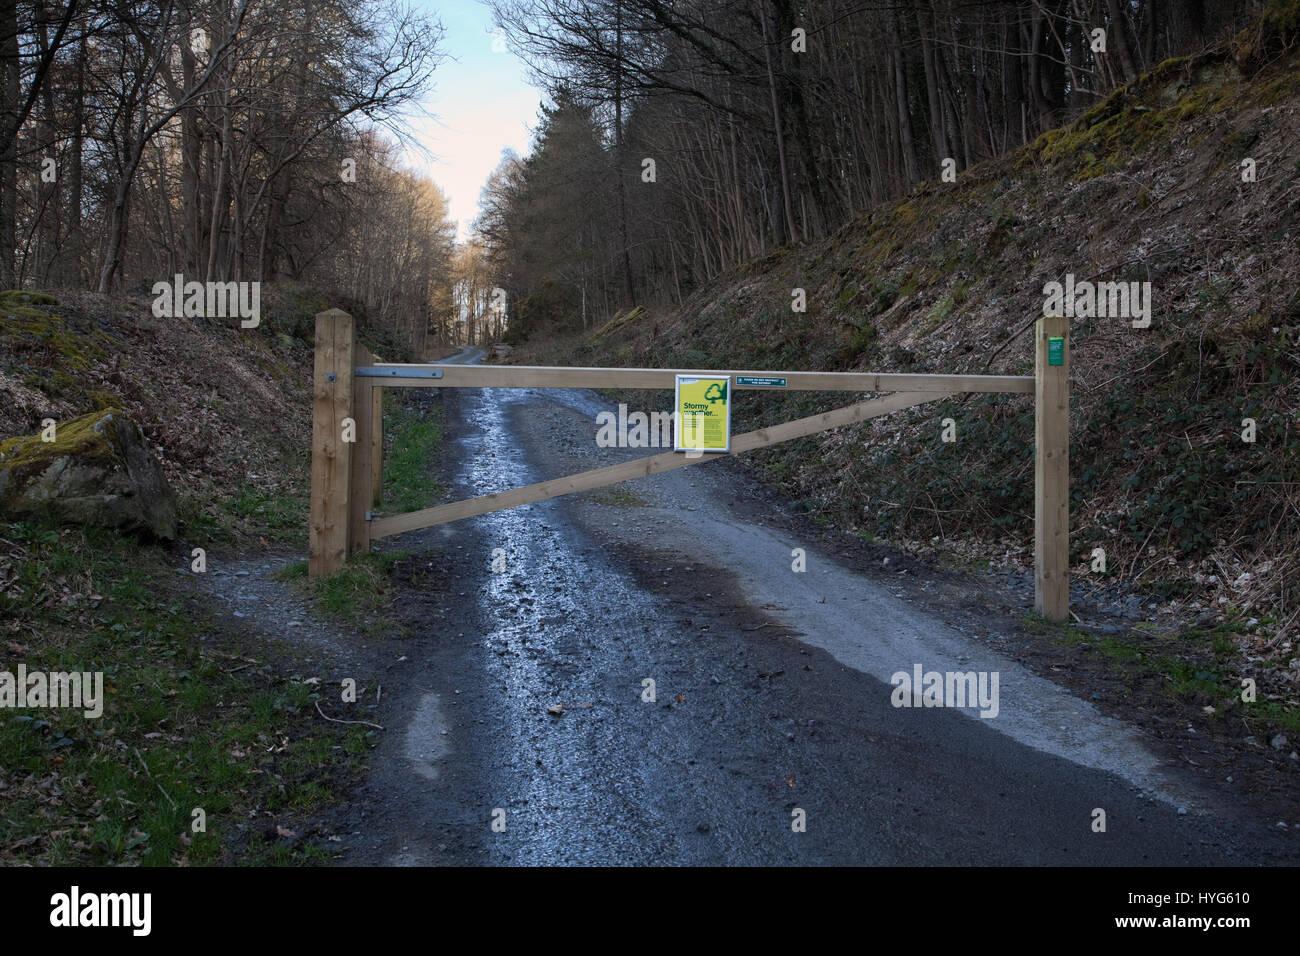 The start of a track into Dodd Wood in the English Lake District - Stock Image